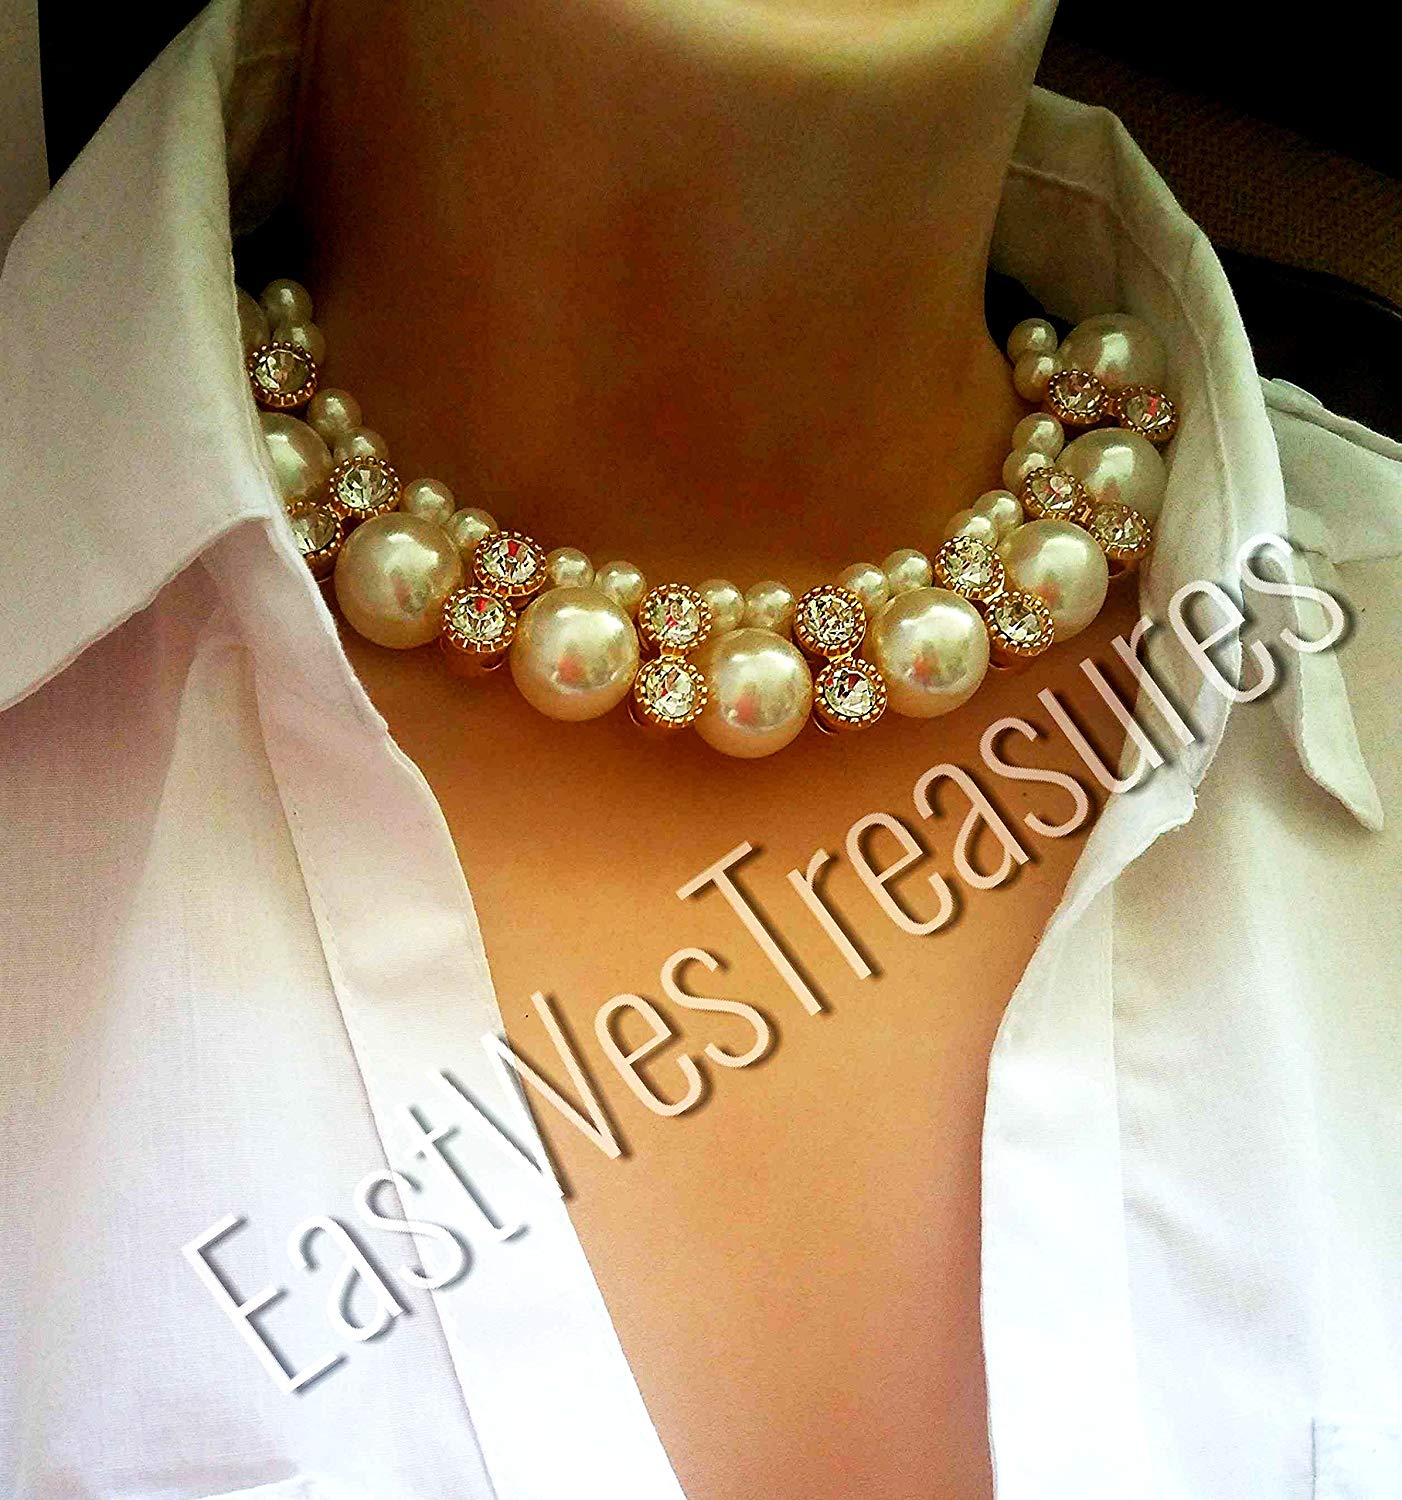 646a6a78dbcaa Cheap White Pearl Statement Necklace, find White Pearl Statement ...